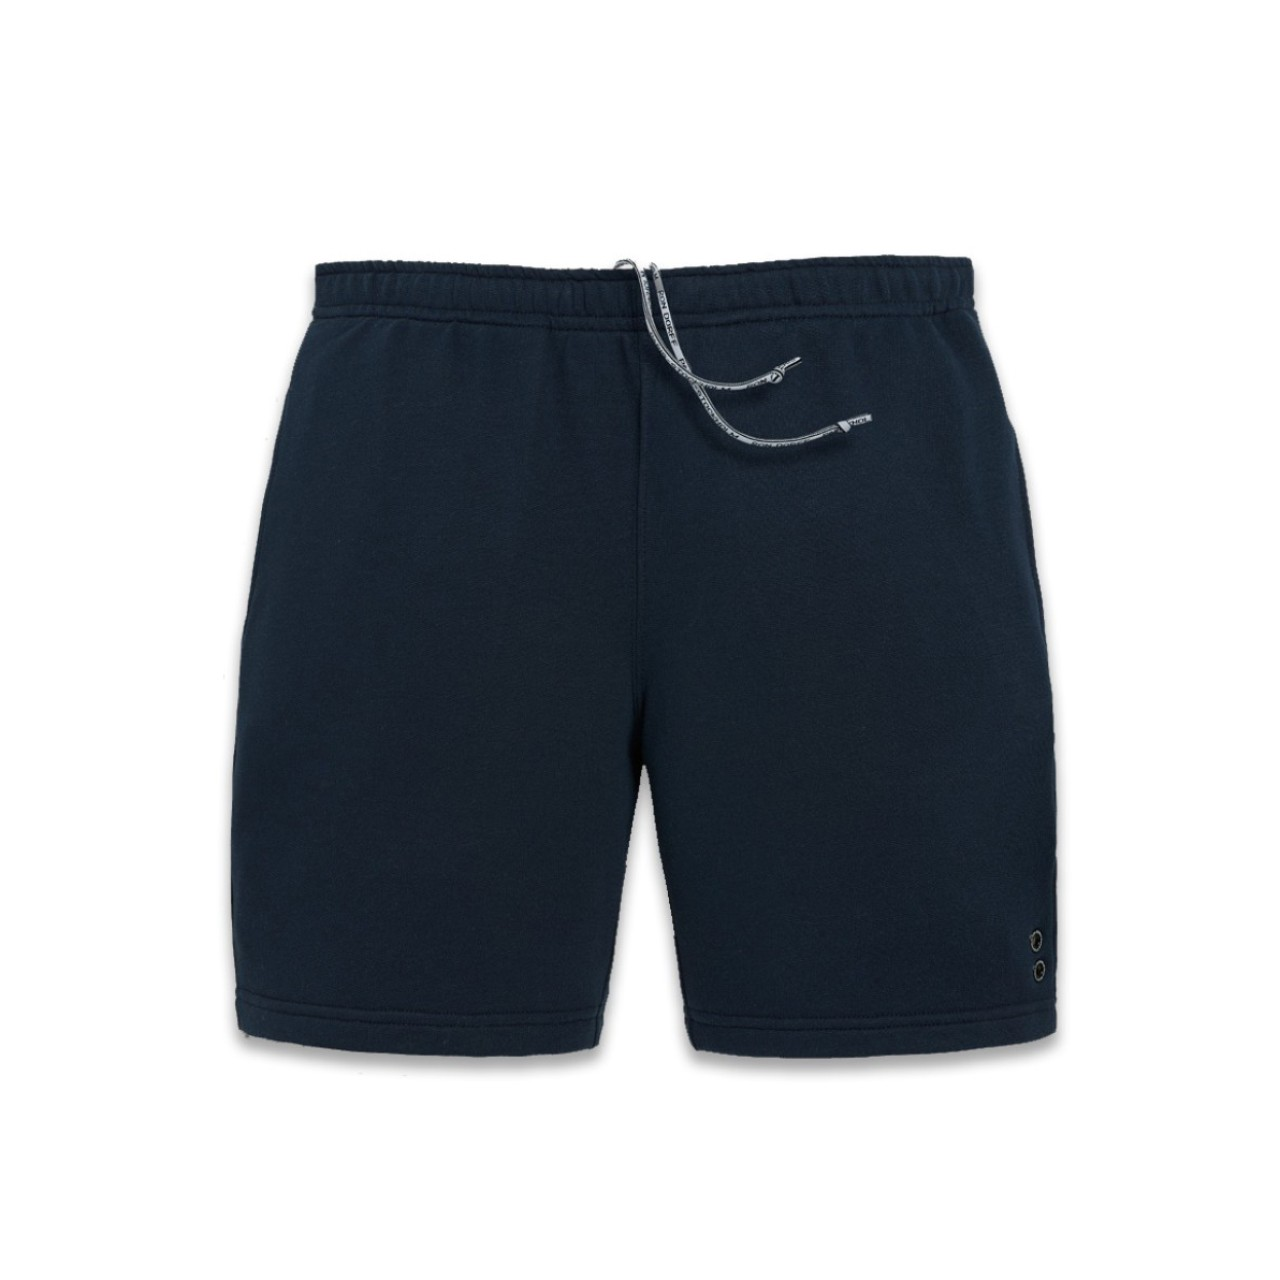 Ron Dorff Summer Jogging Shorts in Navy